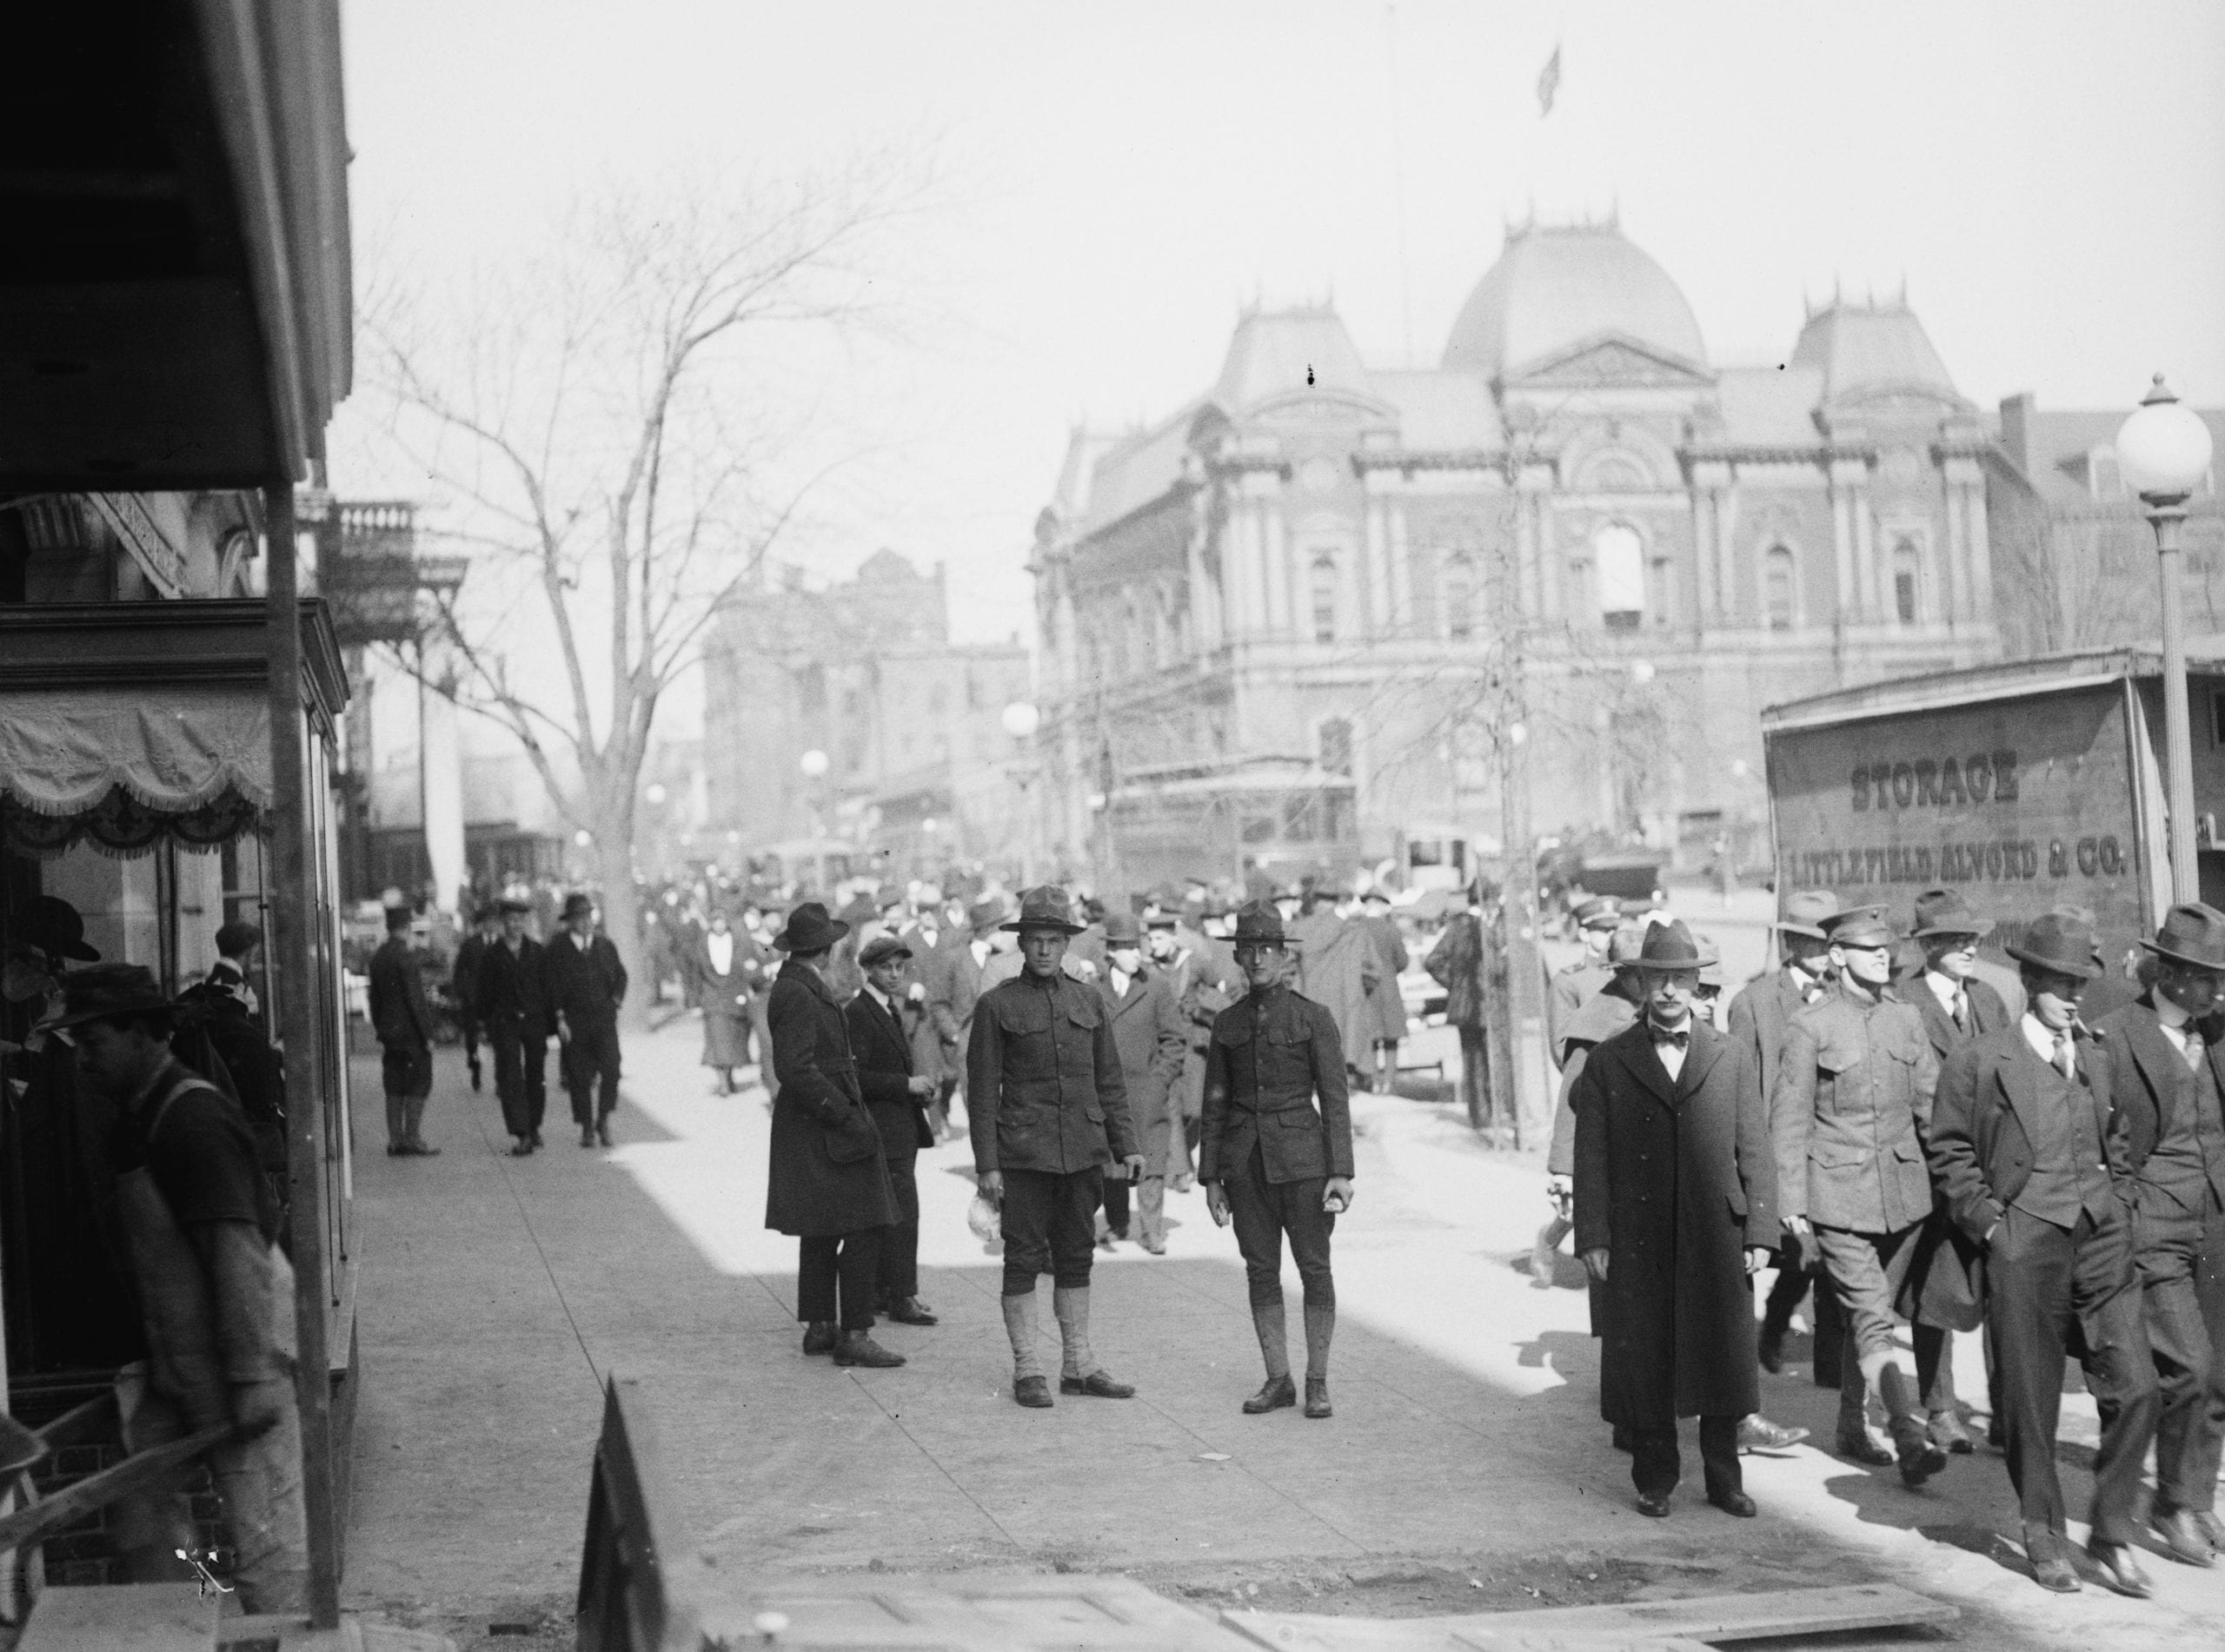 View of 17th St. and Renwick Gallery in 1918